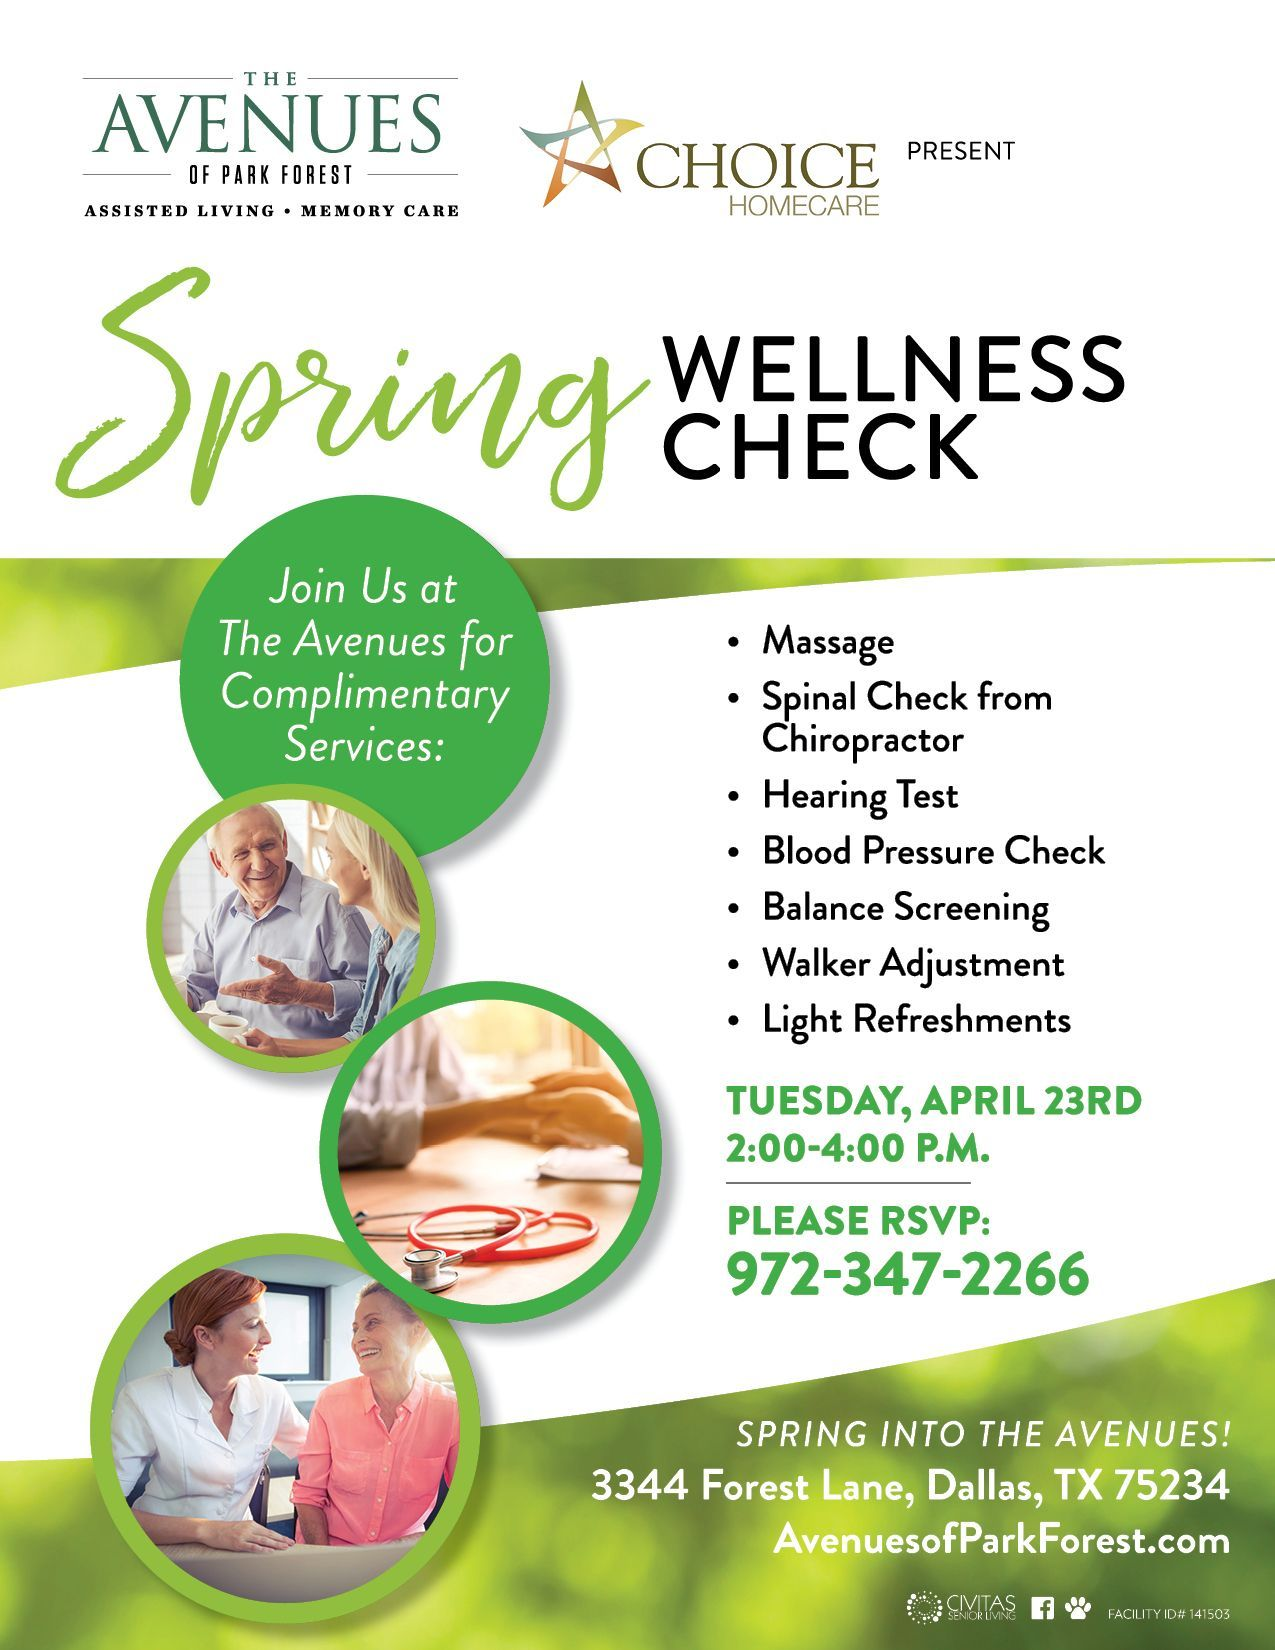 Pin on The Avenues of Park Forest Assisted Living and